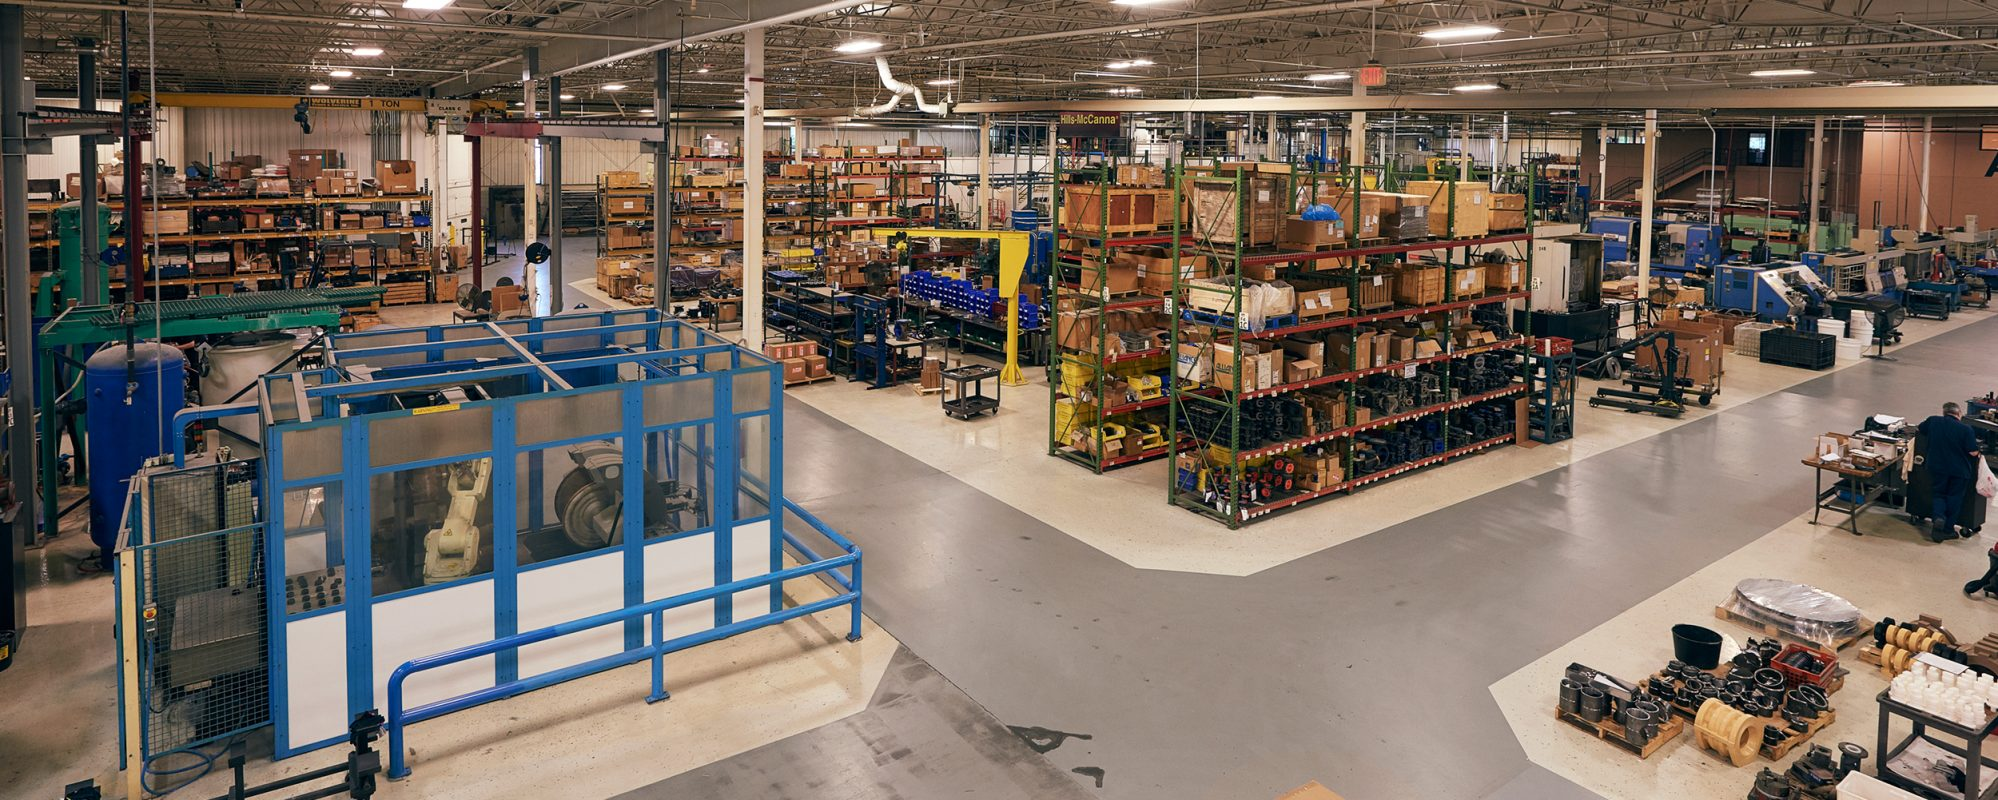 Image of warehouse on Beene Garter's mergers & acquisitions page